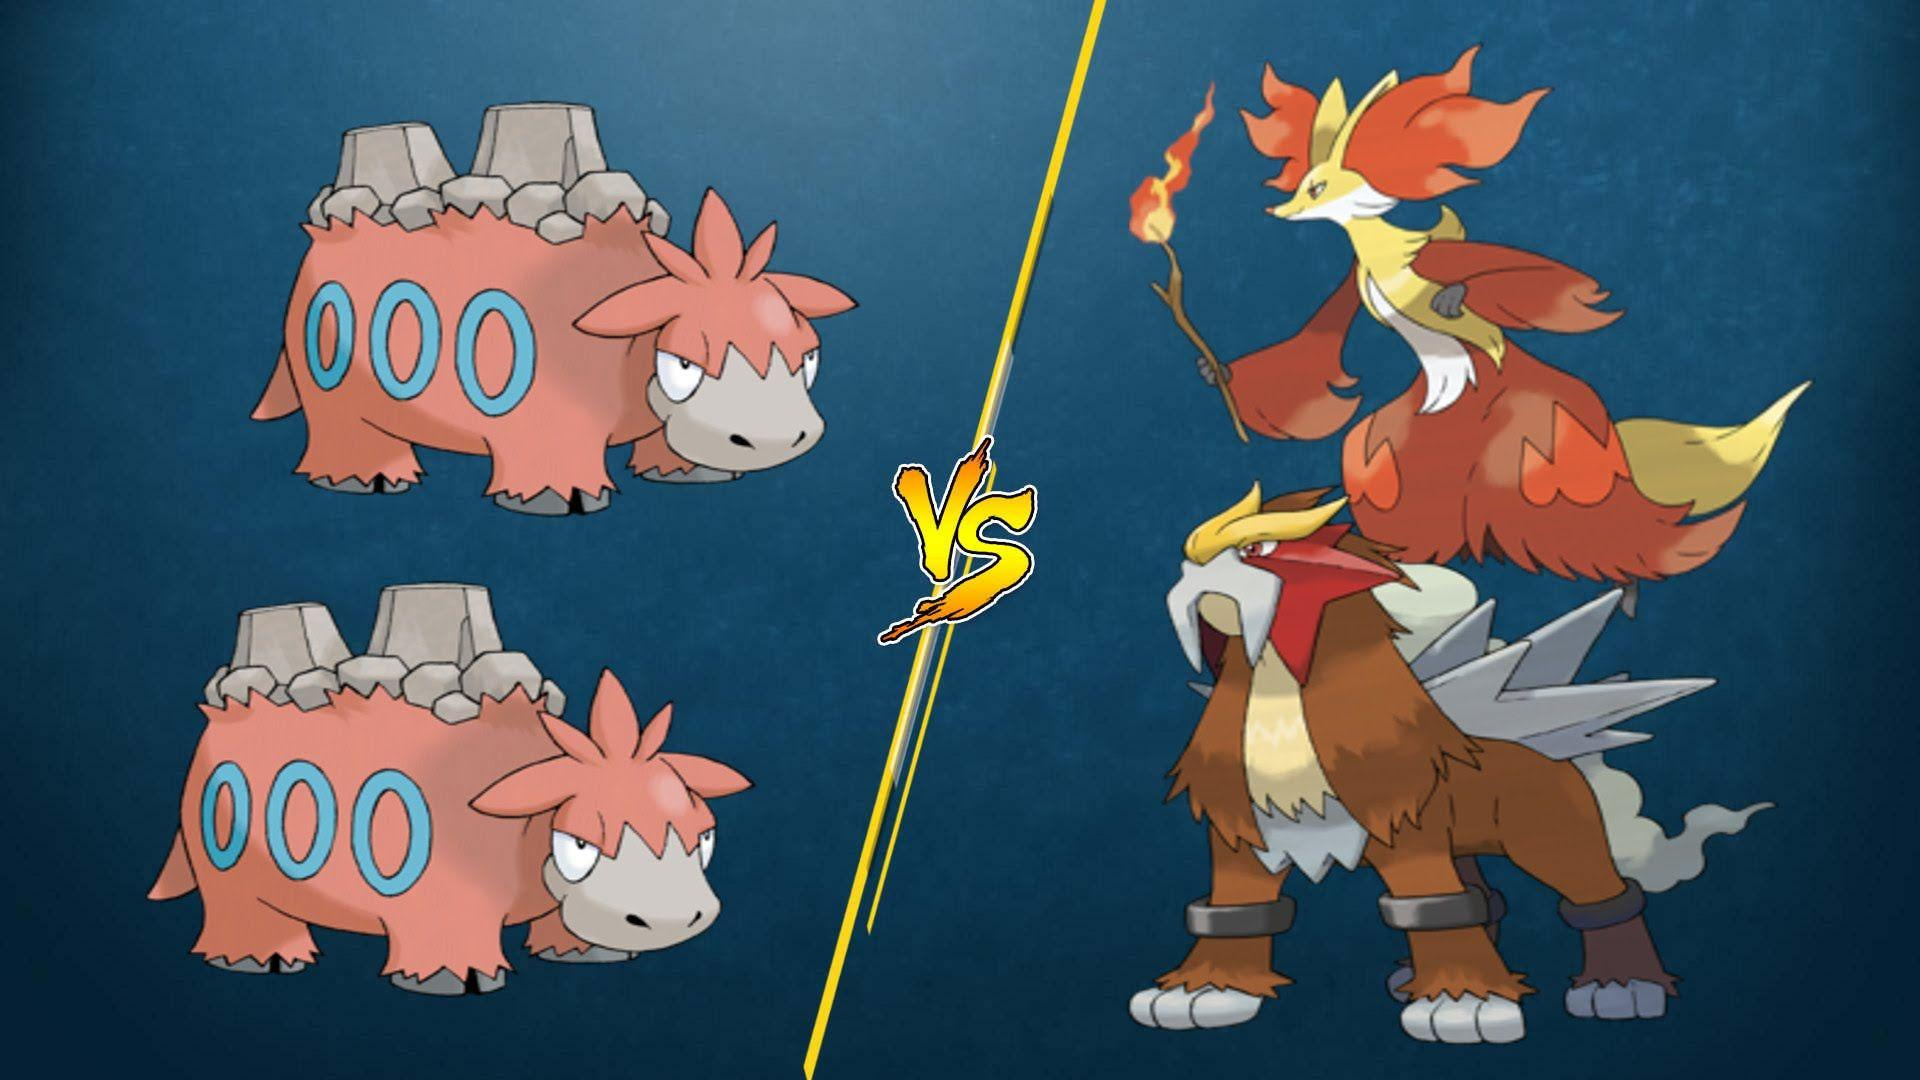 PTCGO Bonus Match] Camerupt/Camerupt vs Entei/Delphox - YouTube